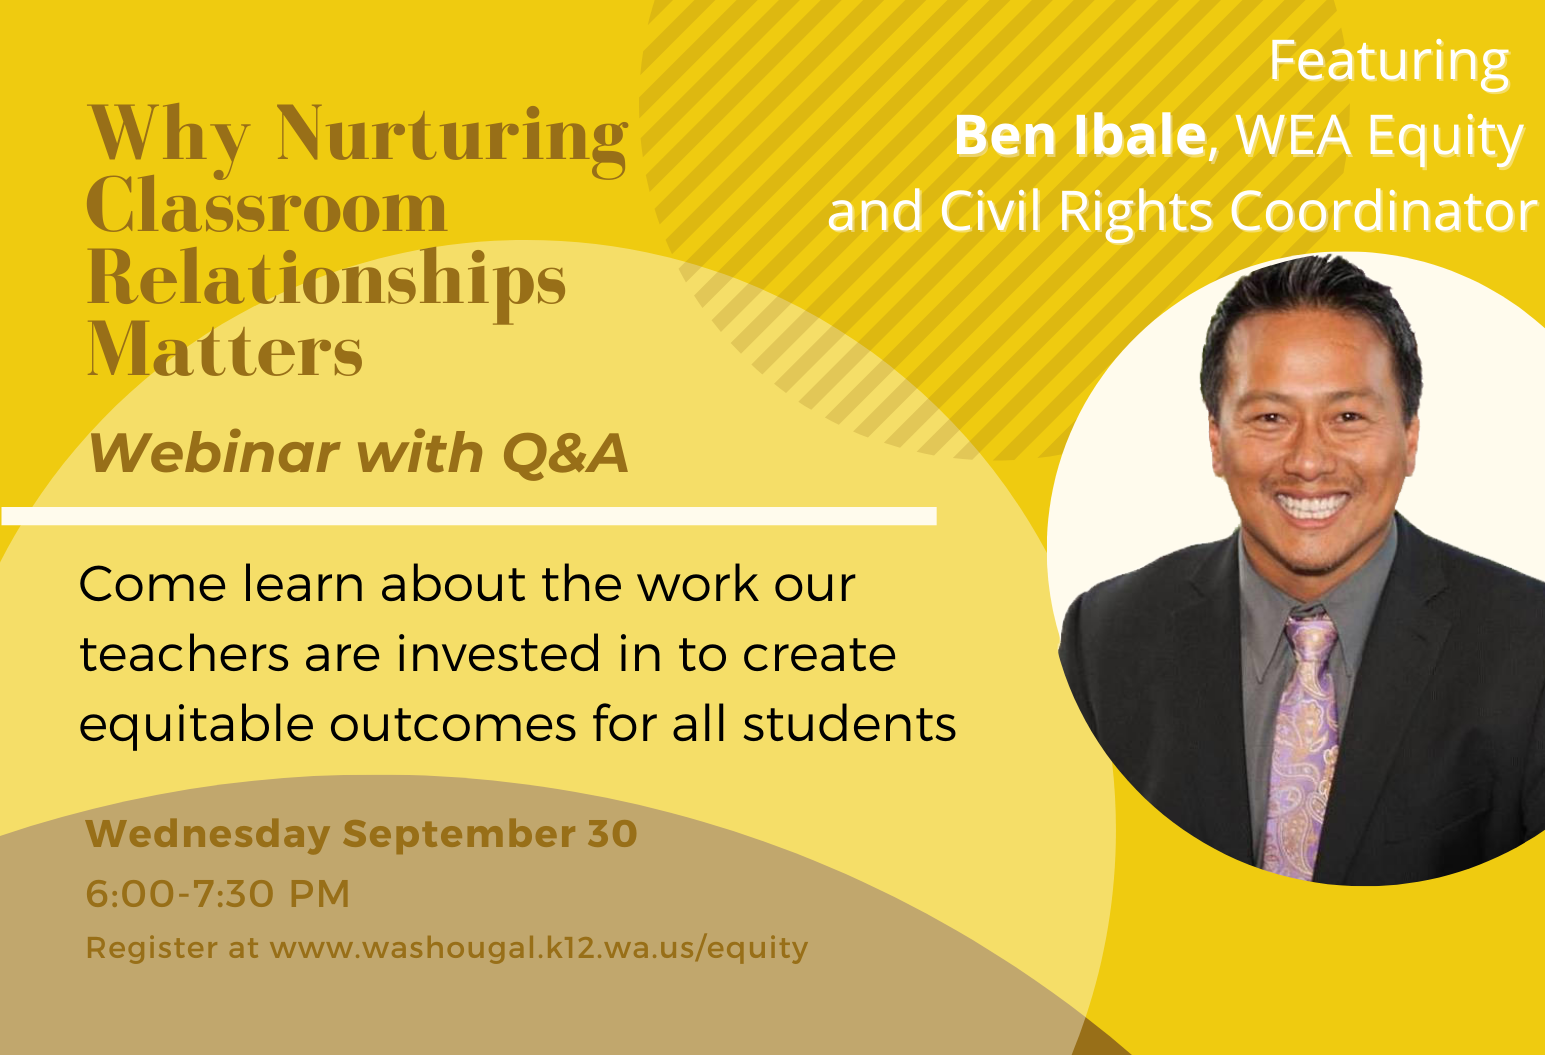 Why Nurturing Classroom Relationships Matters Q & A with Ben Ibale, WEA equity and civil rights coordinator. Come learn about the work our teachers are invested in to create equitable outcomes for all students. Co-hosted by the Washougal Association of Educators and the Washougal School District, Wednesday September 30 6-7:30 PM Register at www.washougal.k12.wa.us/equity